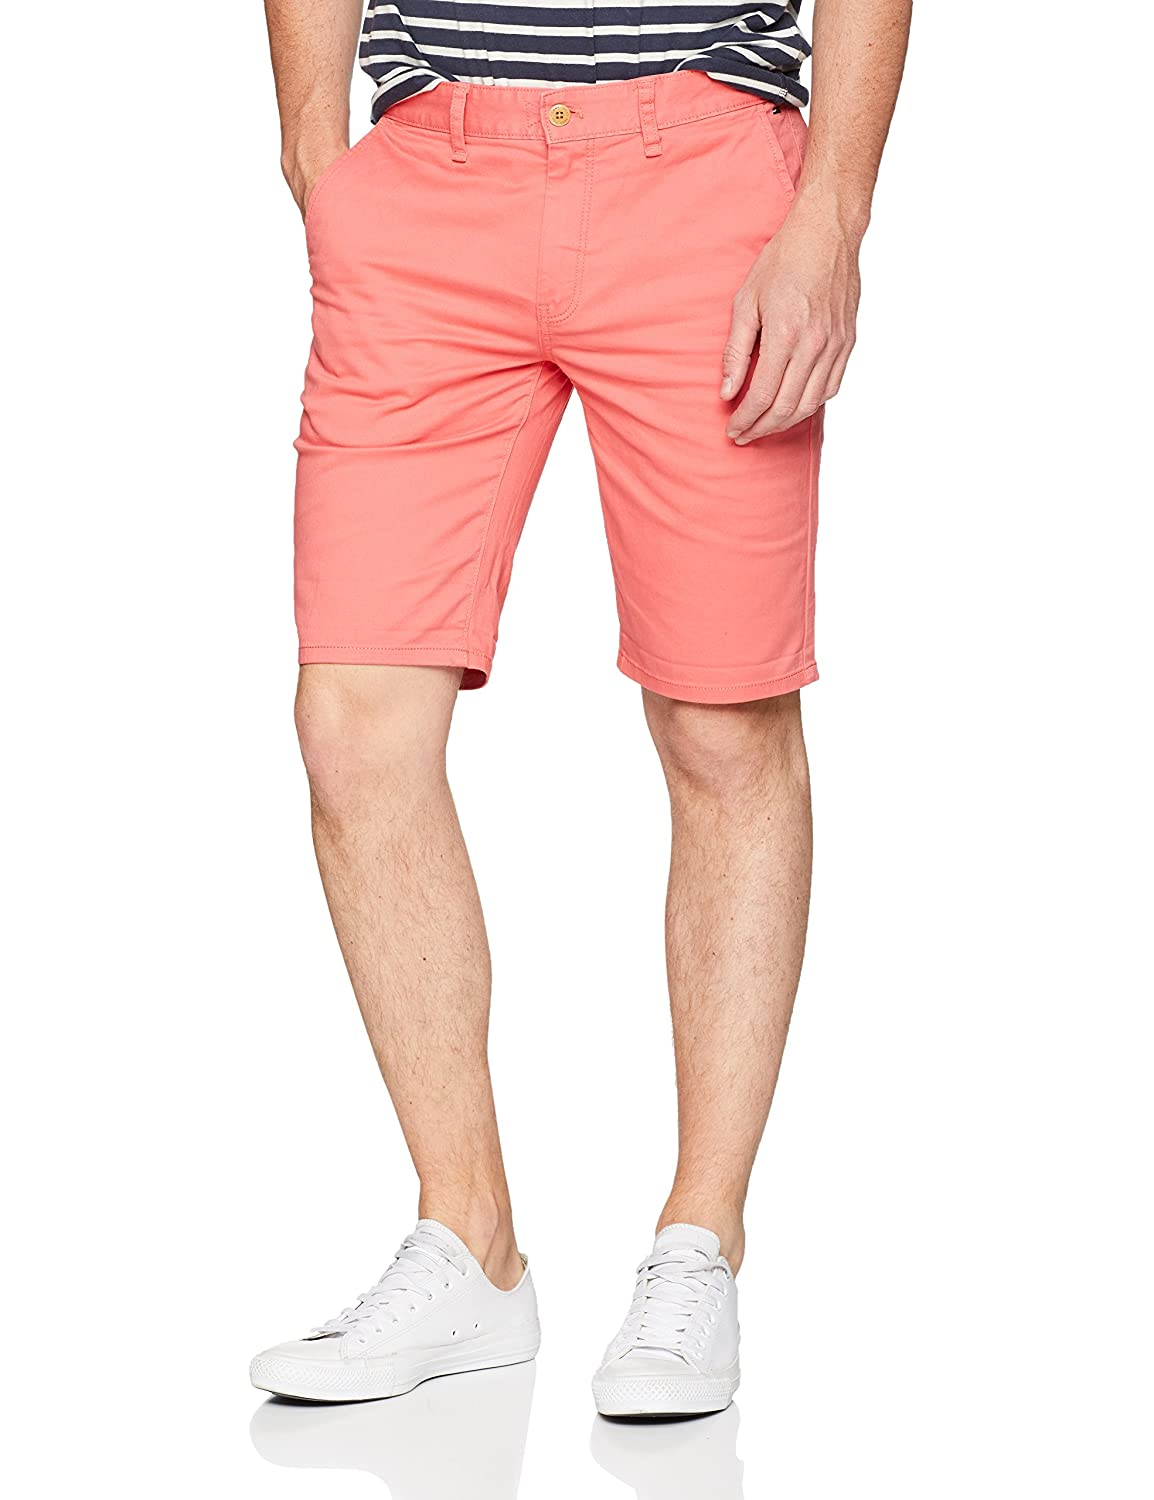 TALLA W29. Tommy Jeans Hombre Essential Straight Chino Short Pantalones